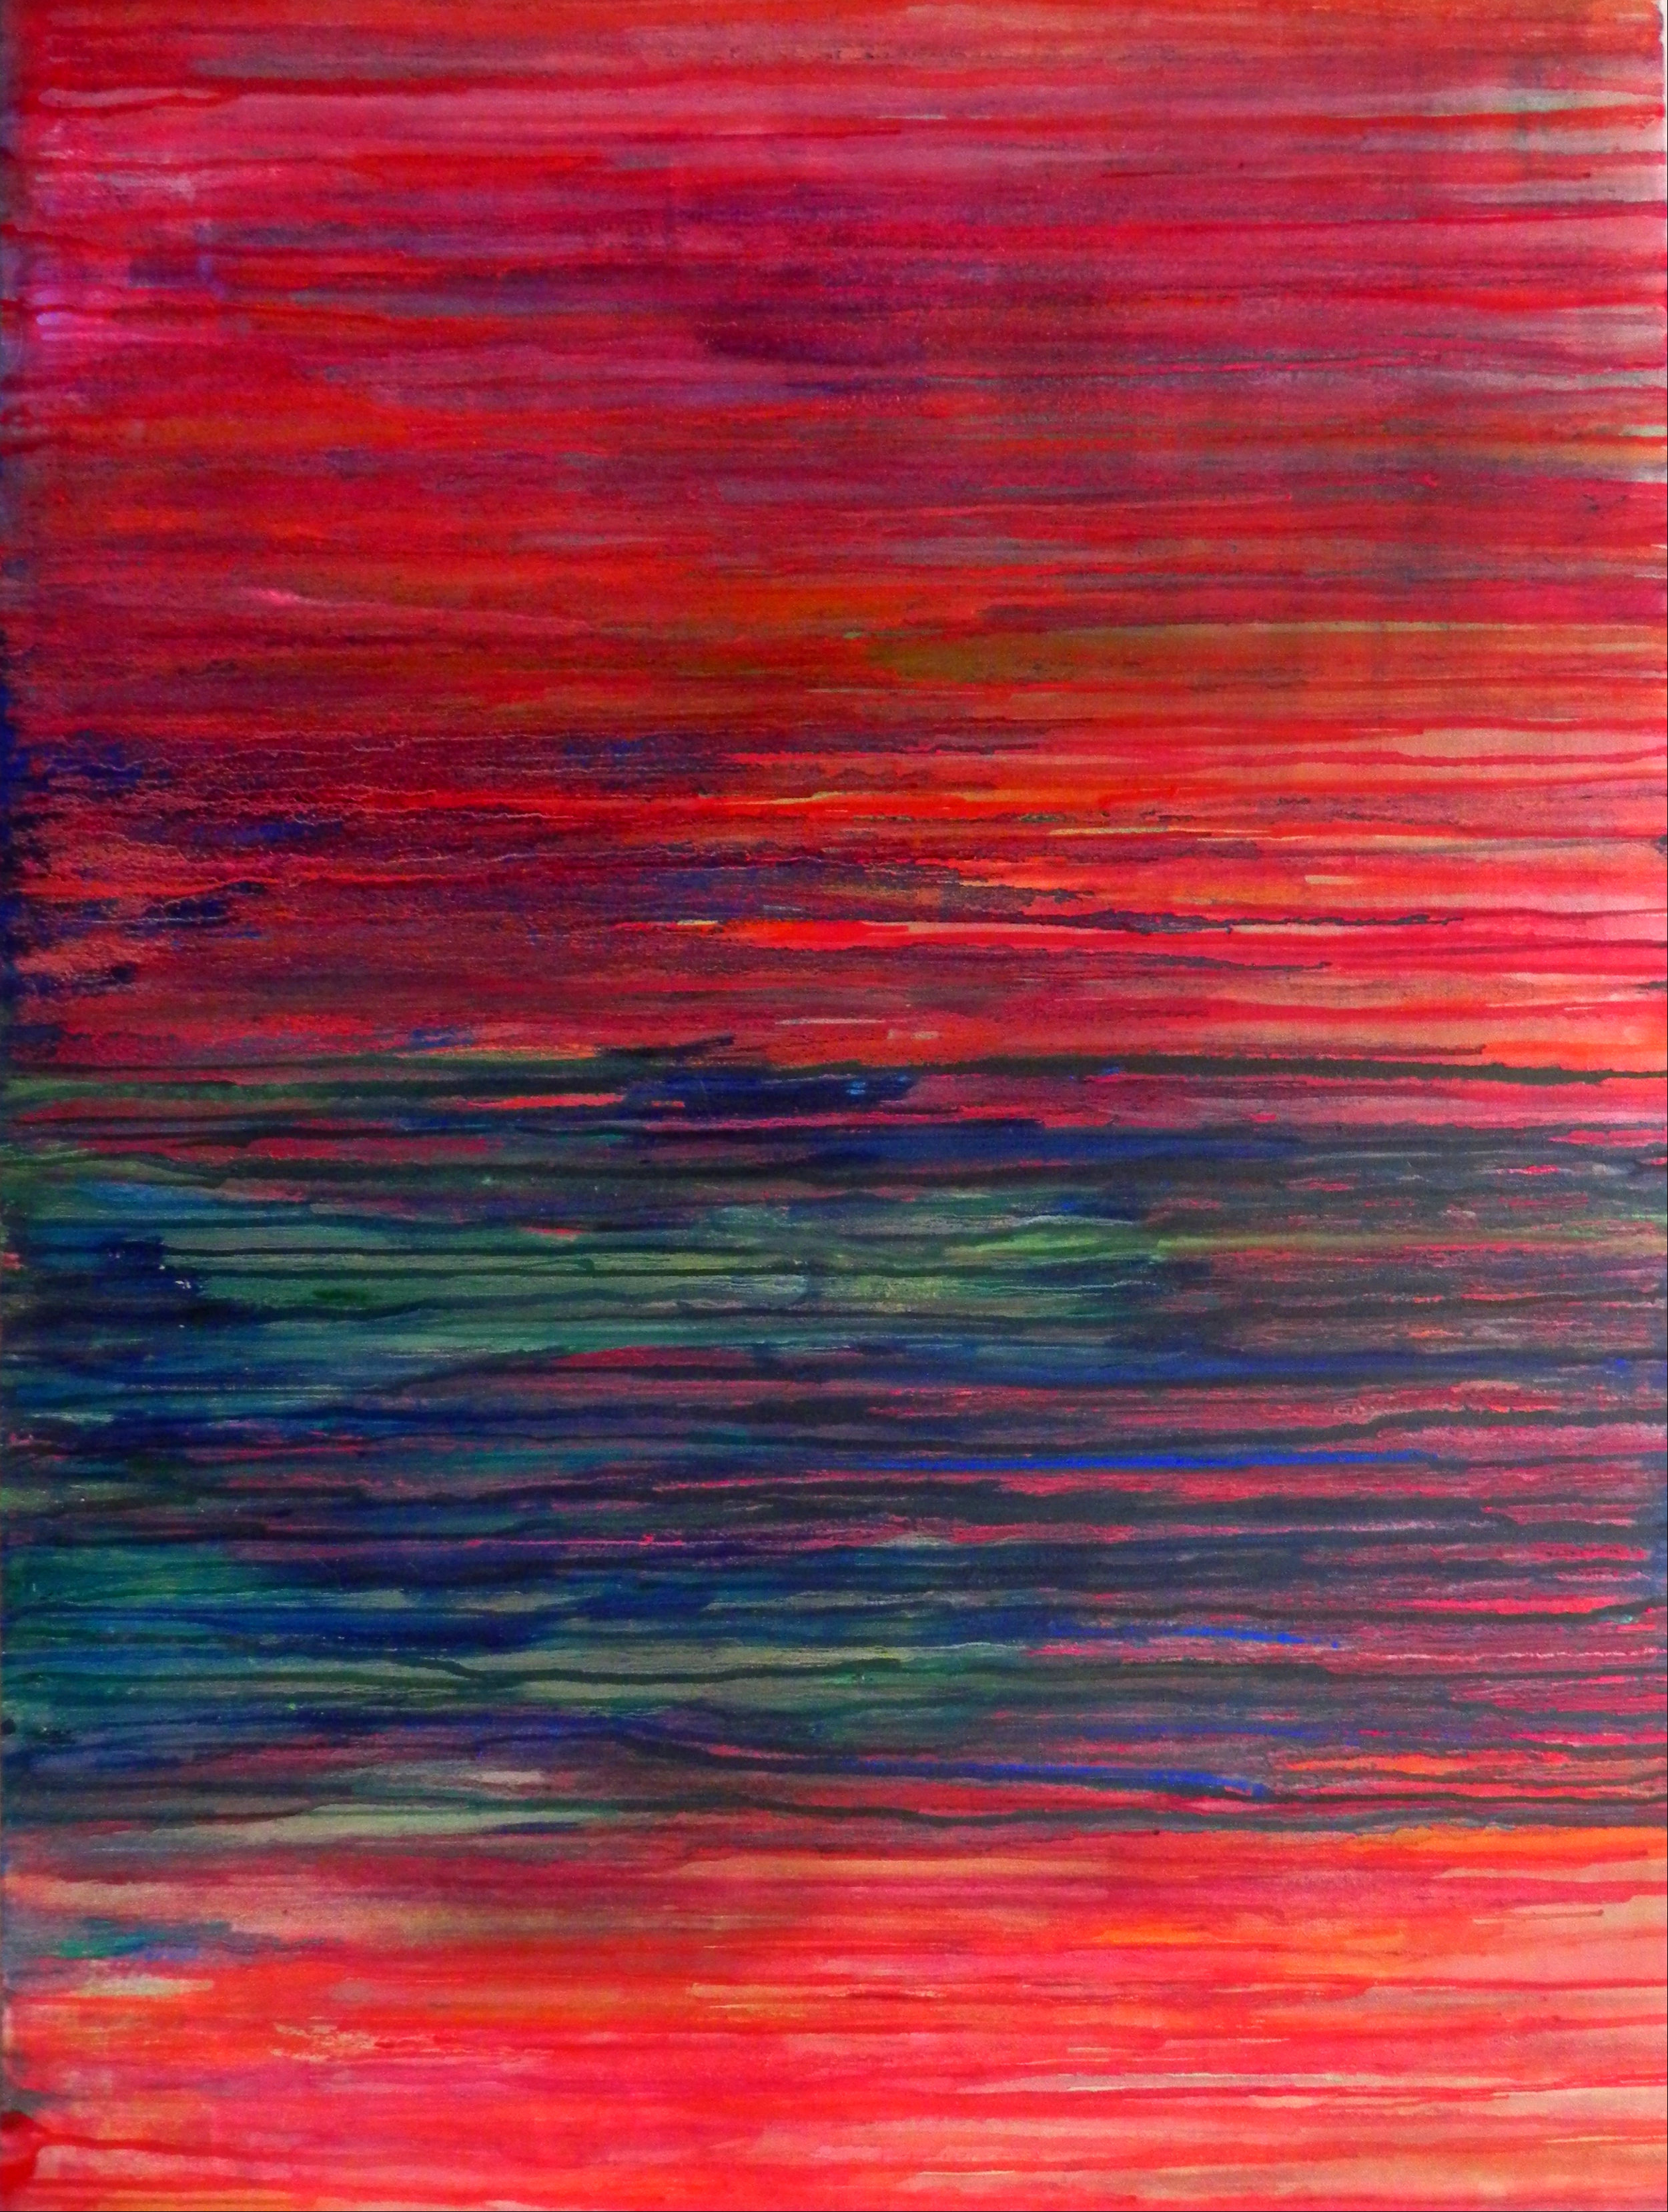 "WASHED AWAY, 2012. 40"" x 30"". Canvas. Mixed Media. Copyright © Karen Santos 2013."